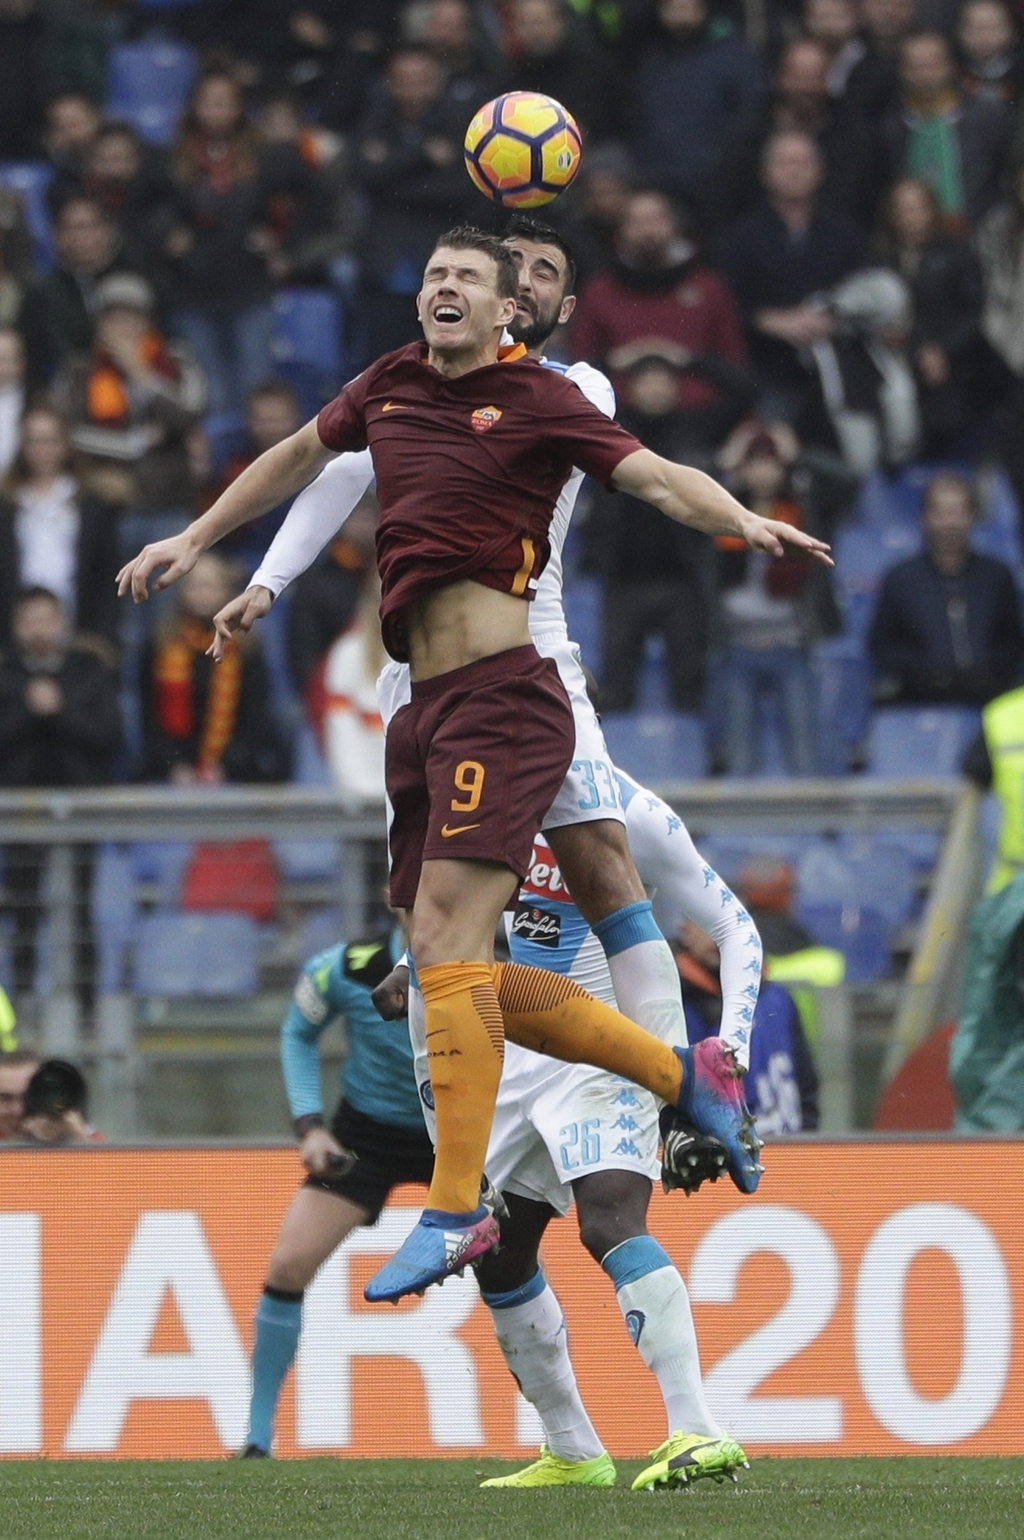 Roma's Edin Dzeko, foreground, and Napoli's Raul Albiol jump for the ball during a Serie A soccer match between Roma and Napoli, at the...